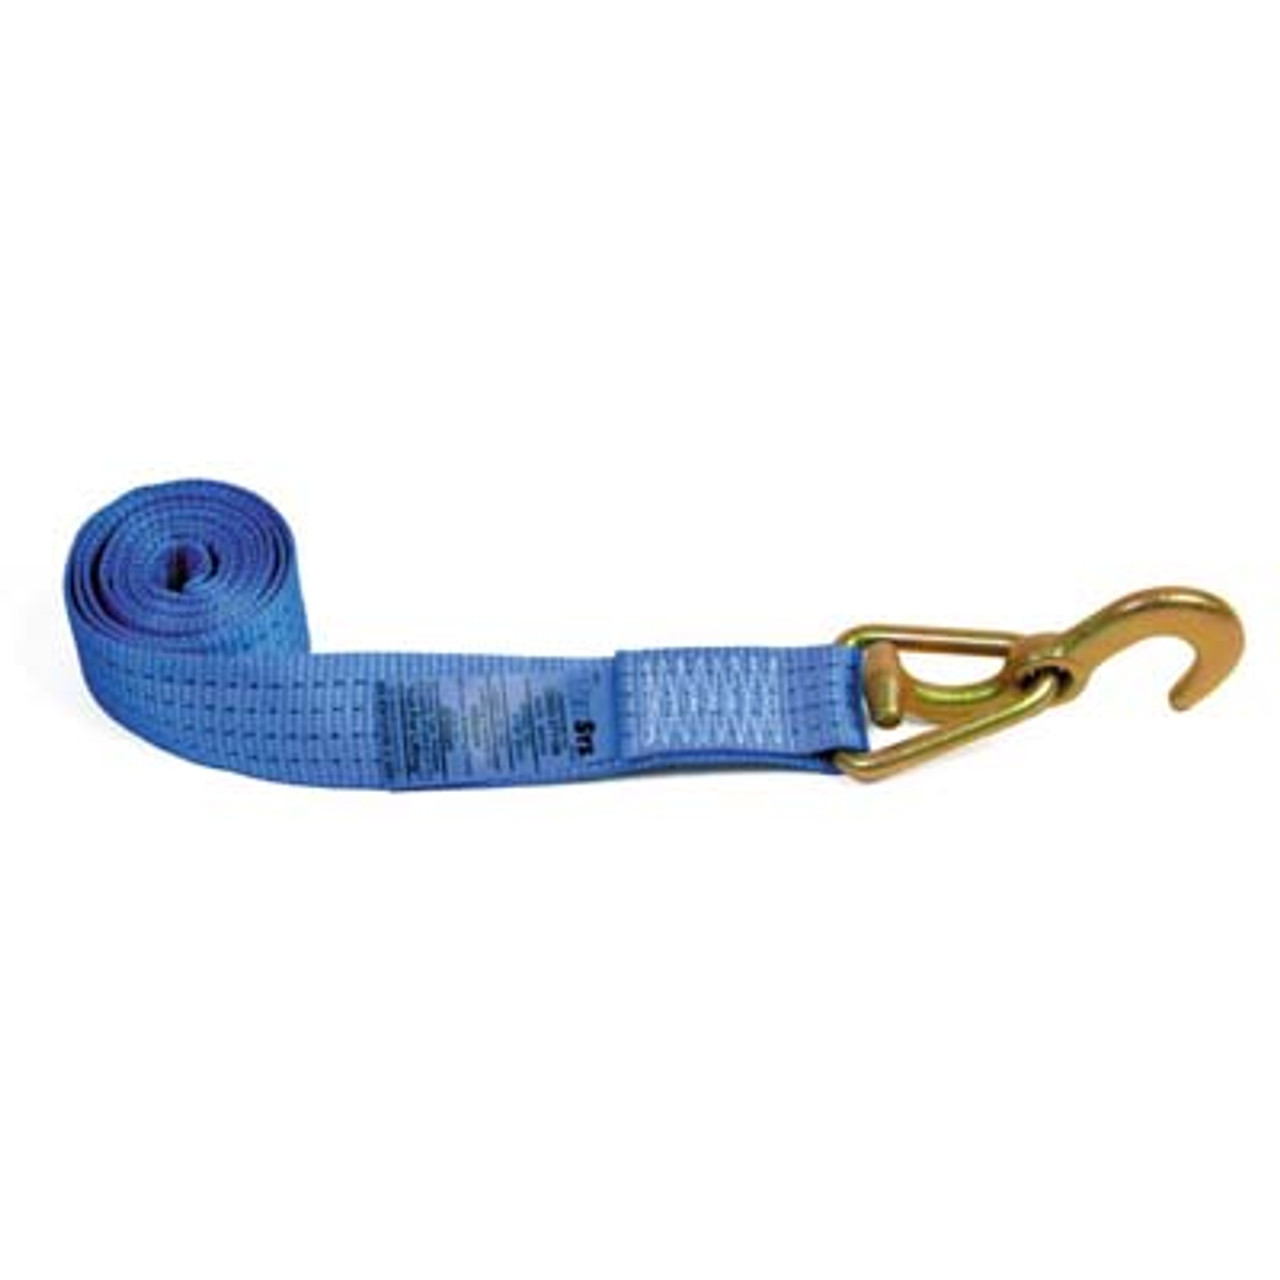 50mm SWIVEL T HOOK STRAP